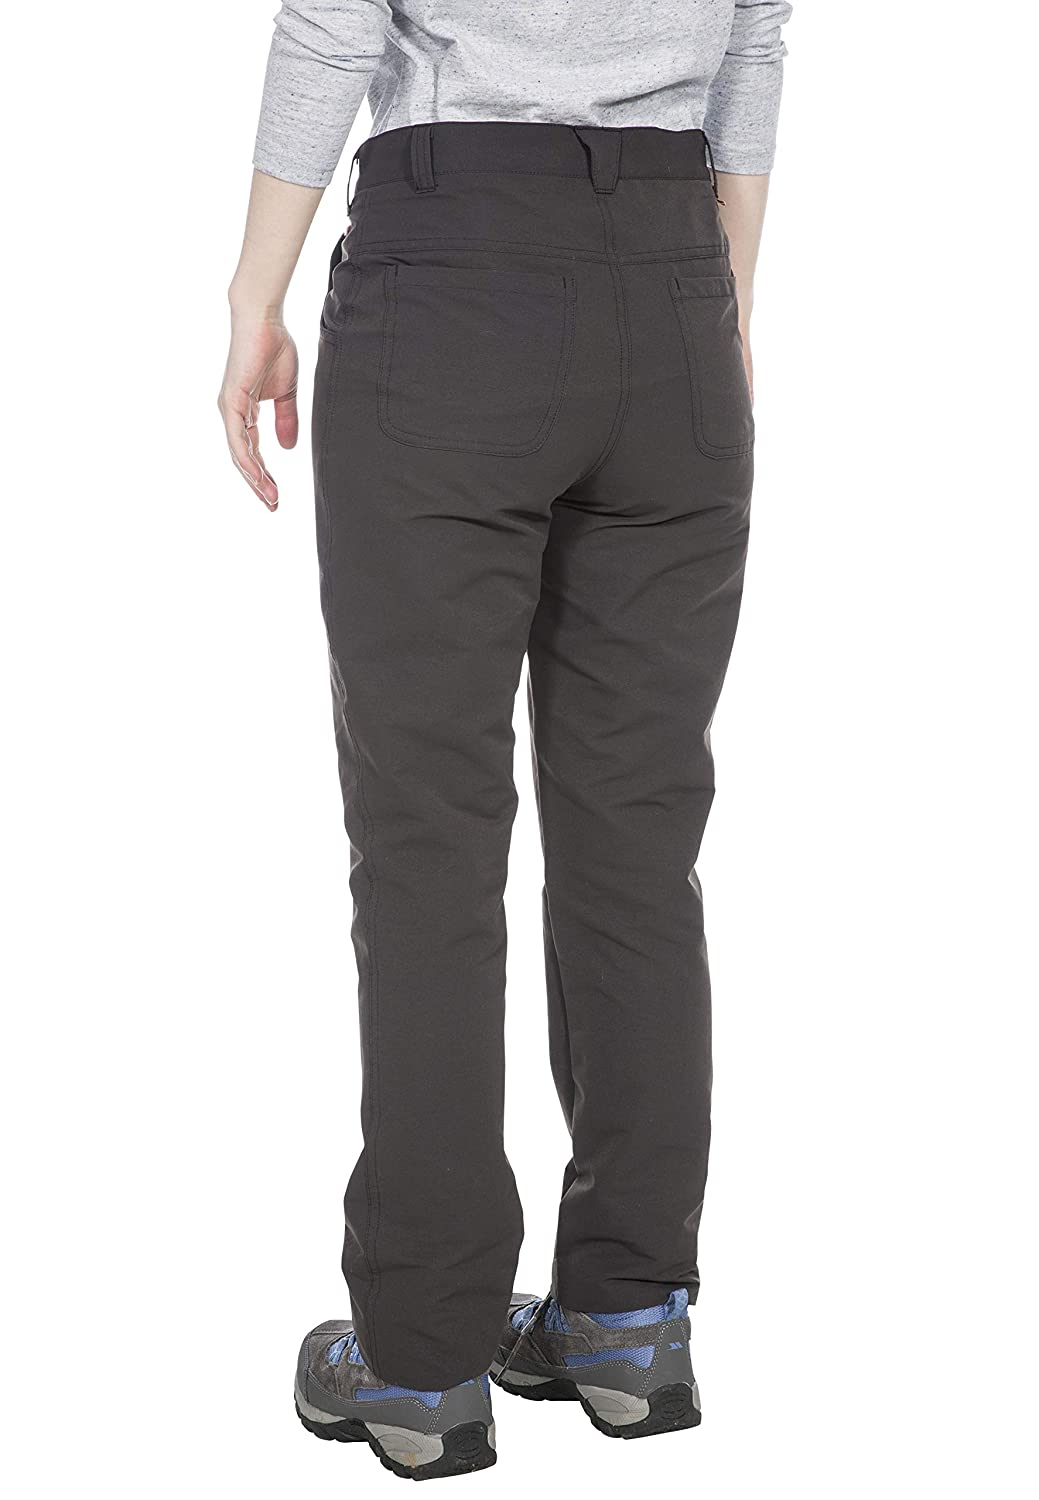 Trespass Womens ite Quick Dry Mosquito Repellent Trousers with Uv Protection